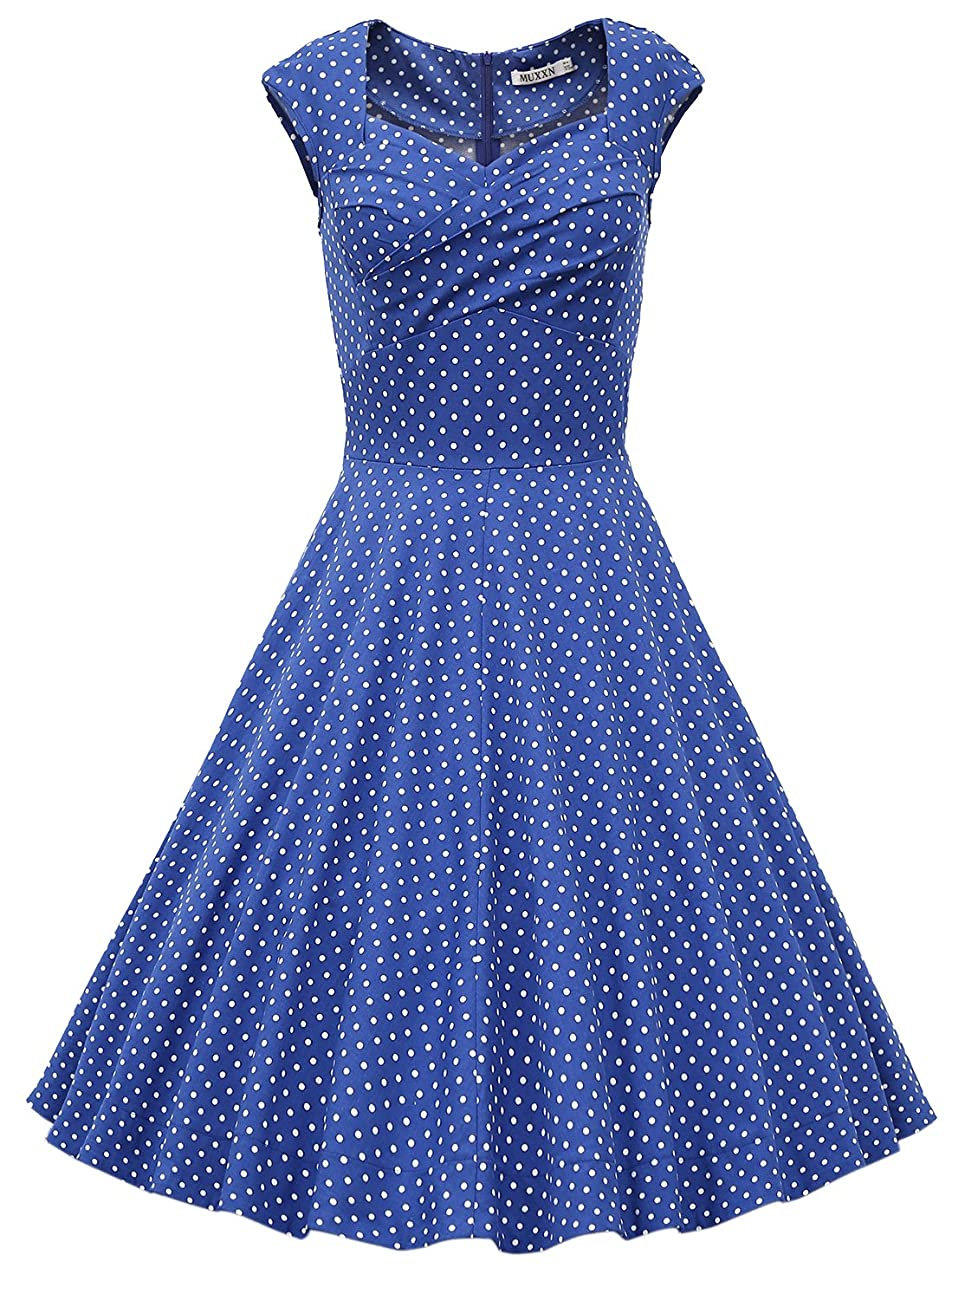 MUXXN Women's 1950s Retro Vintage Cap Sleeve Party Swing Dress 0